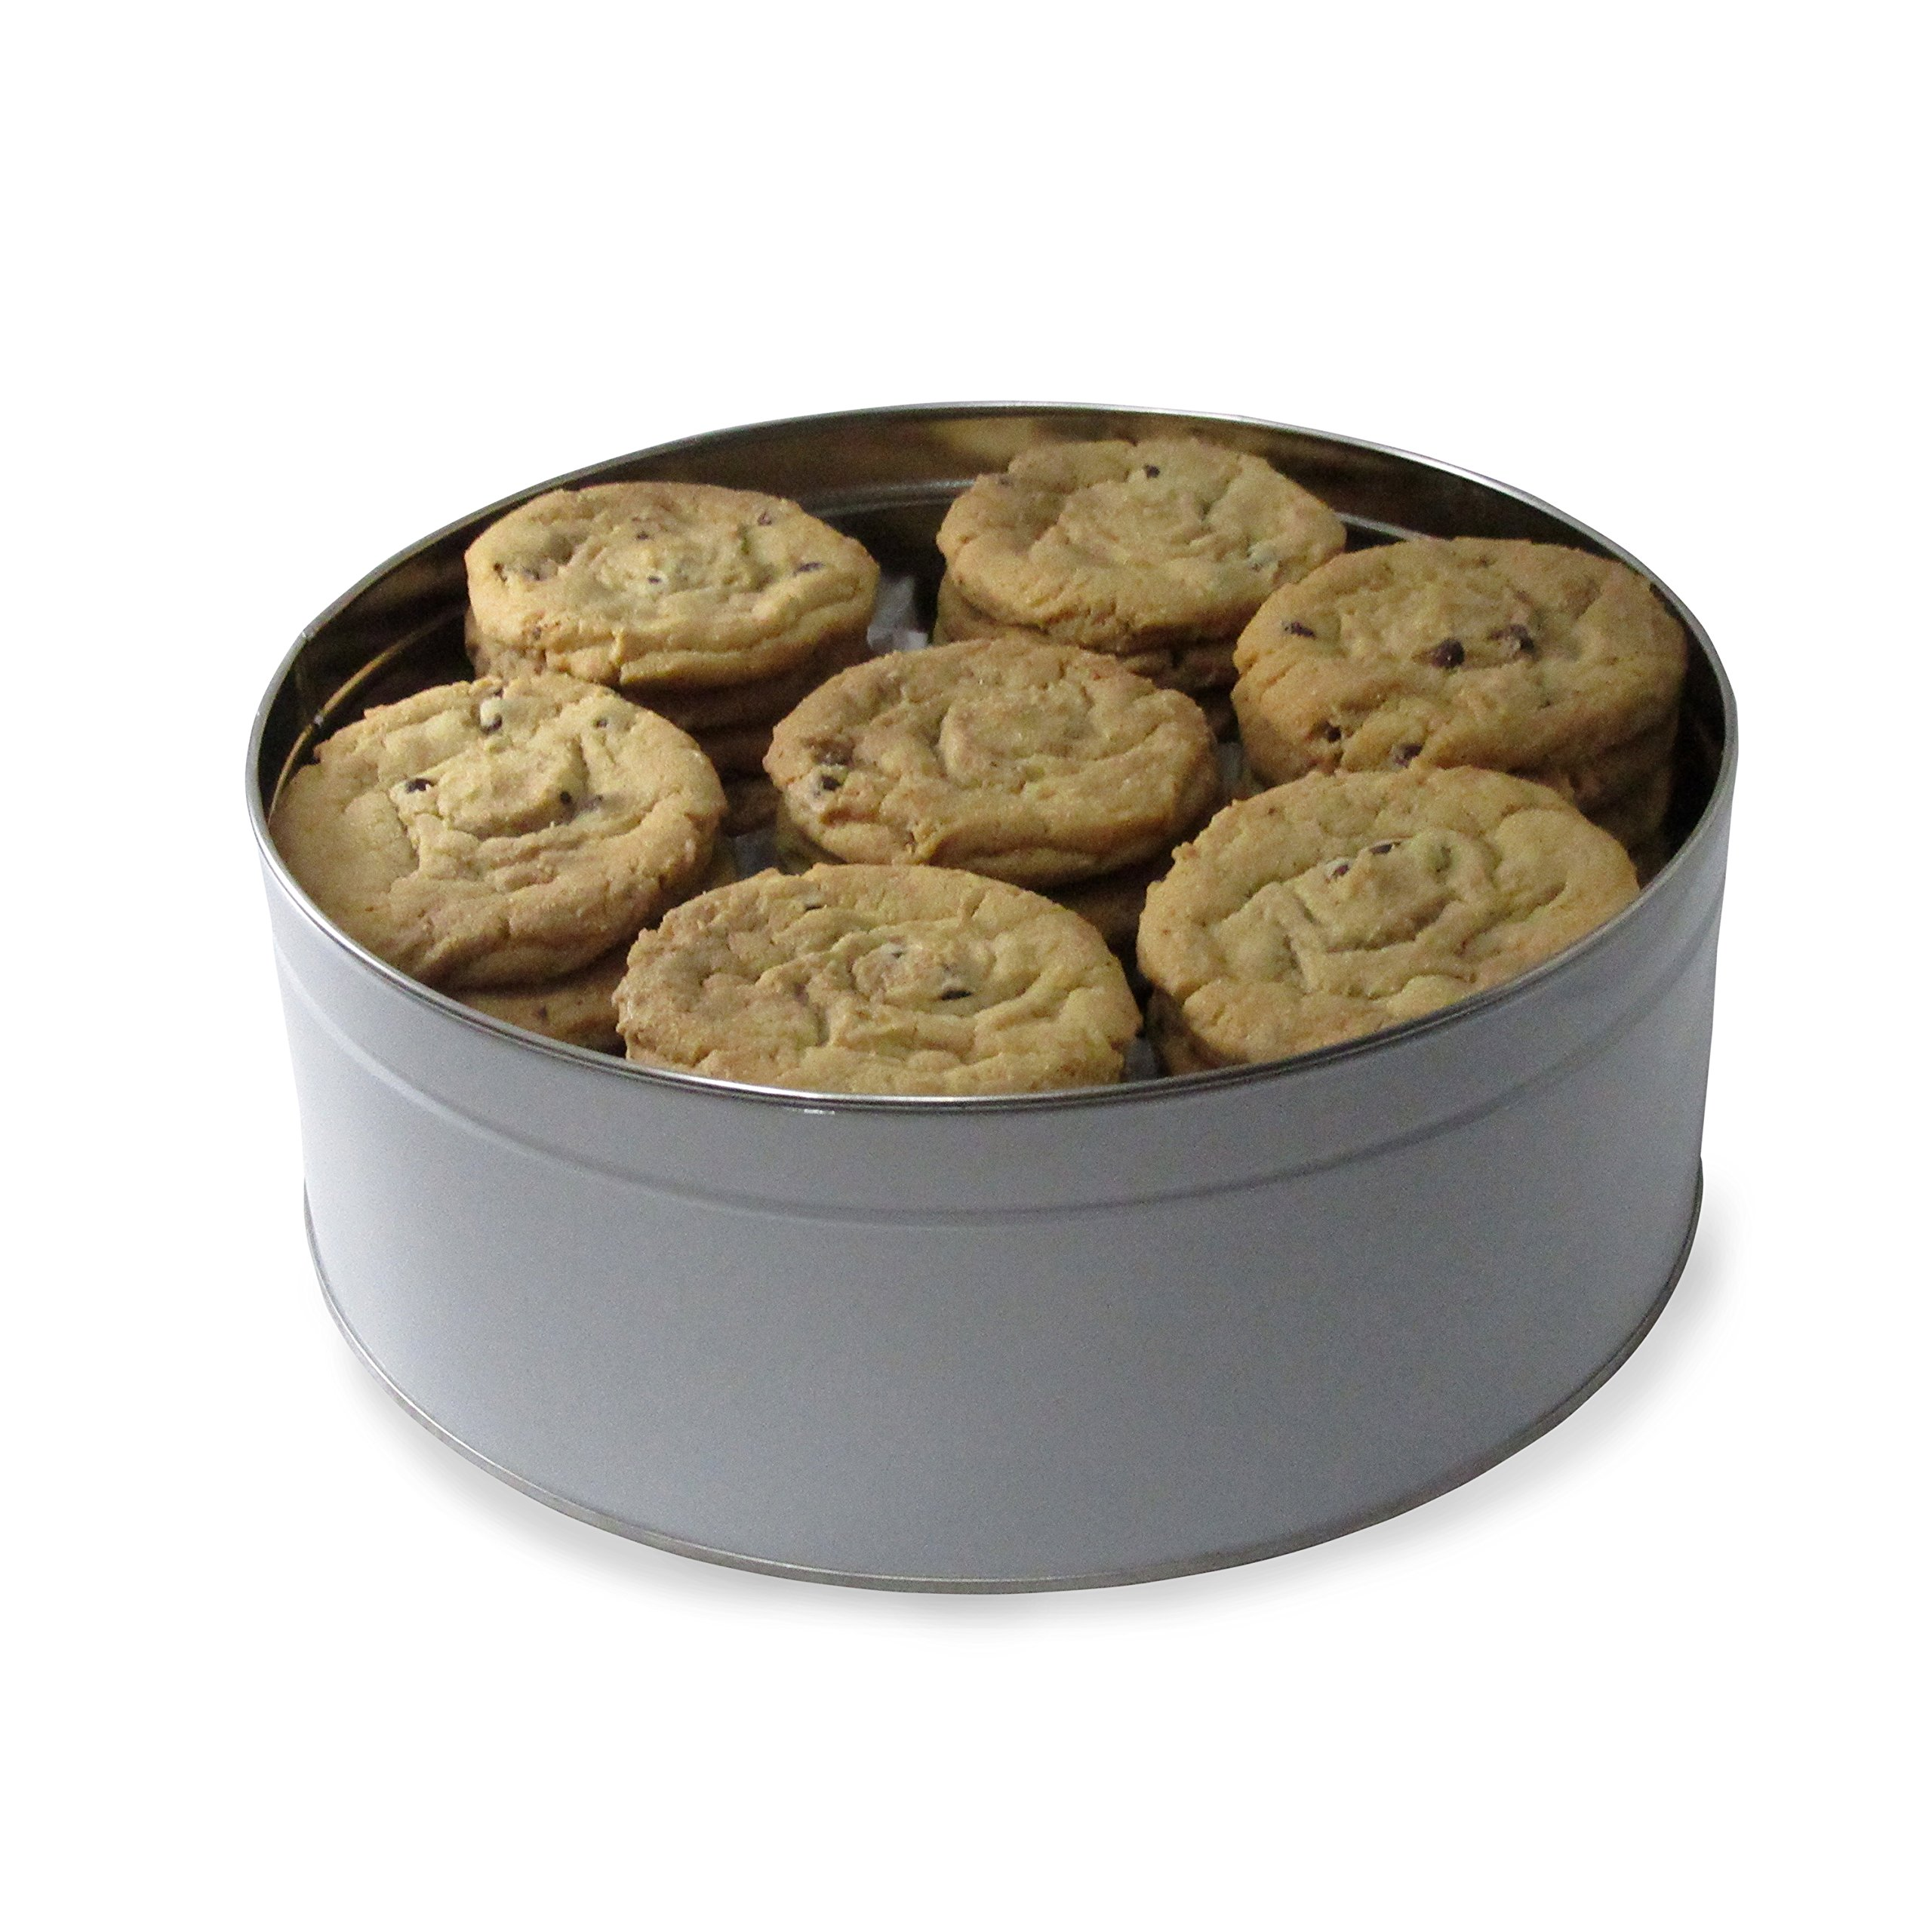 Fresh Baked Chocolate Chip Cookie Tins, Comes in Multiple Sizes | Gimmee Jimmy's Authentic Cookies-5 Pound Tin by Gimmee Jimmy's Cookies (Image #1)